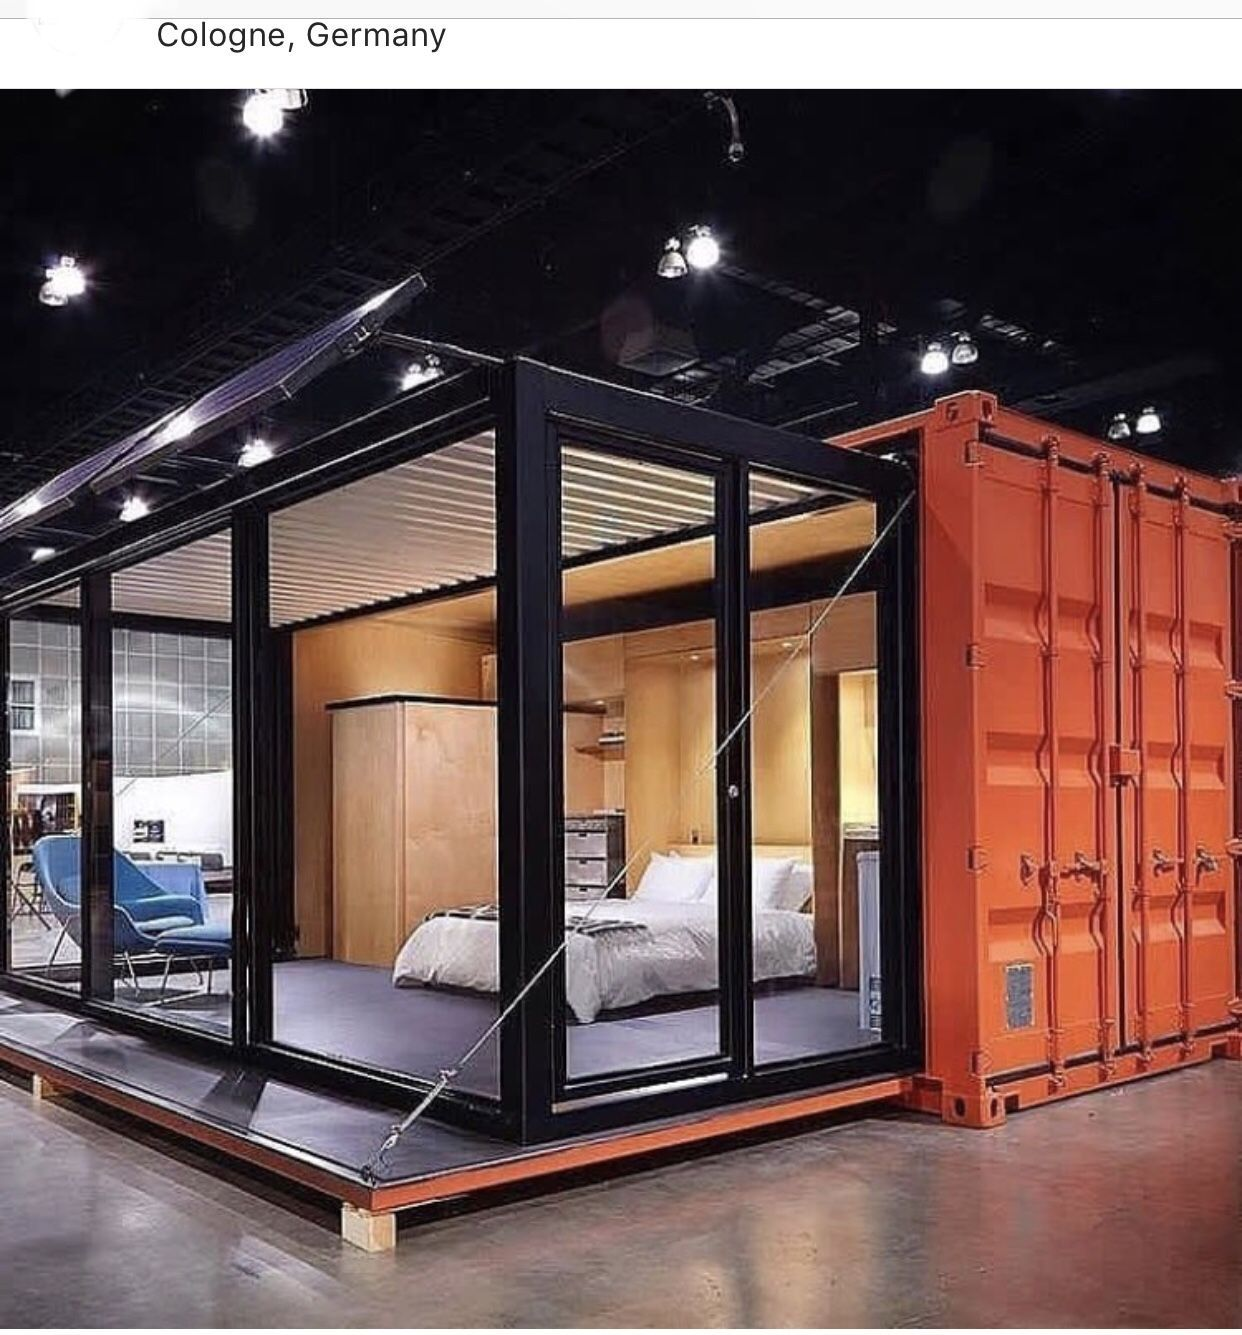 101 Super Modern Shipping Container Houses Ideas Shop Garage